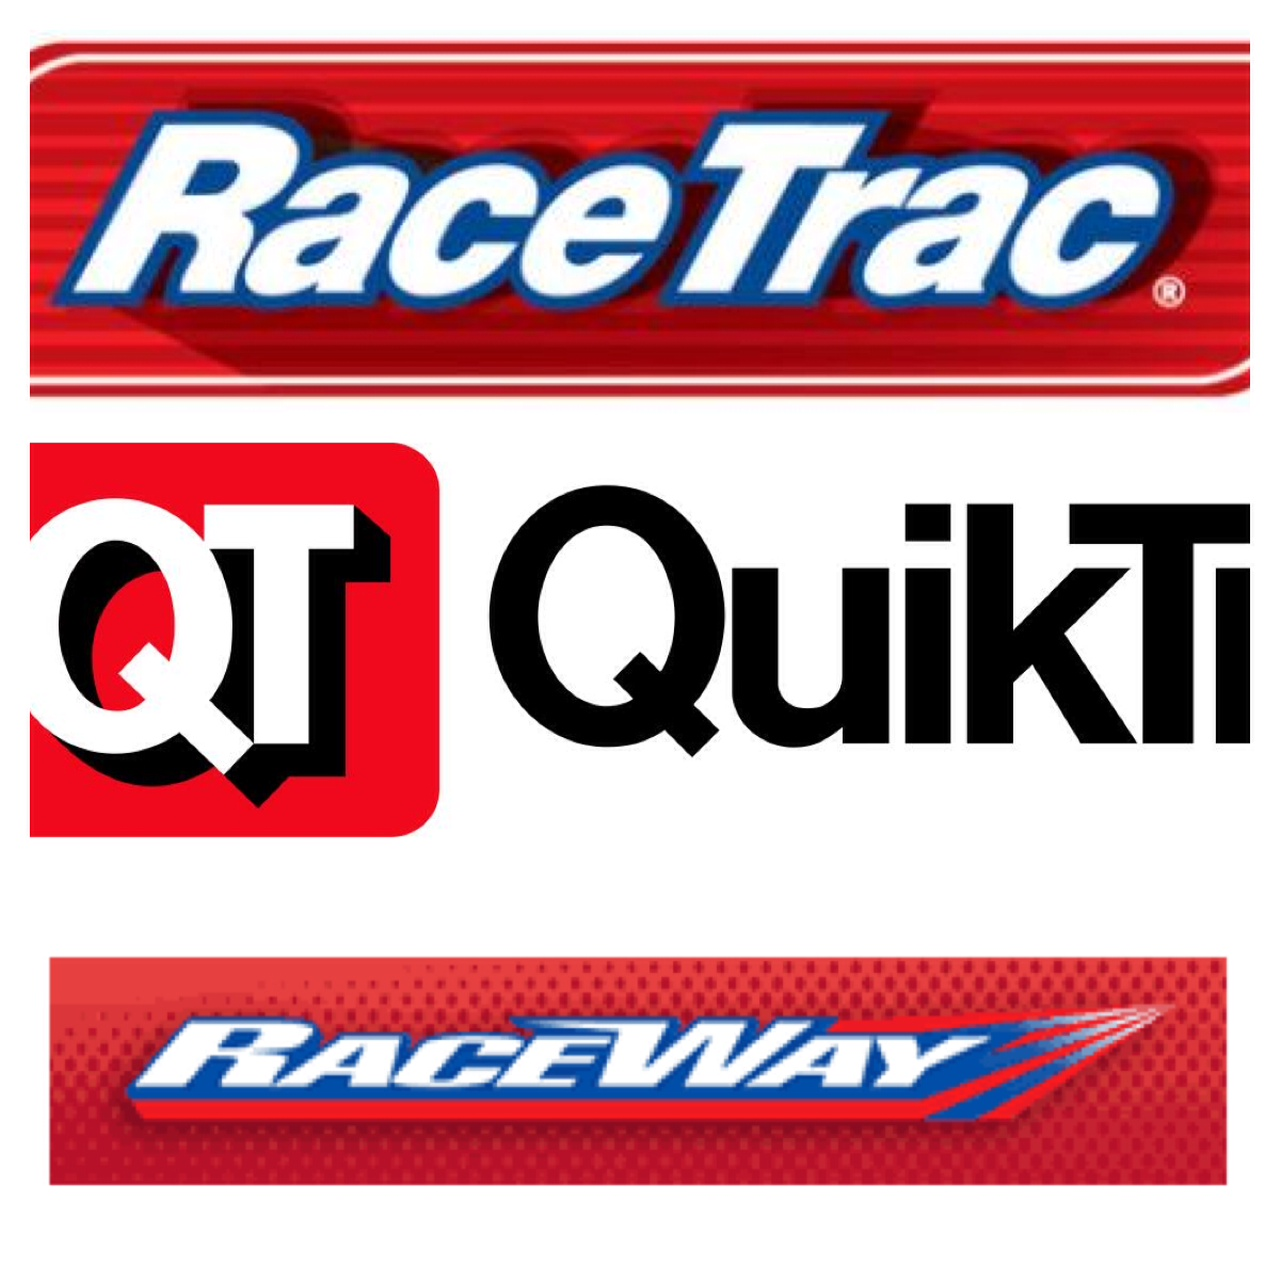 Tomorrow's News Today - Atlanta: QuikTrip and RaceTrac